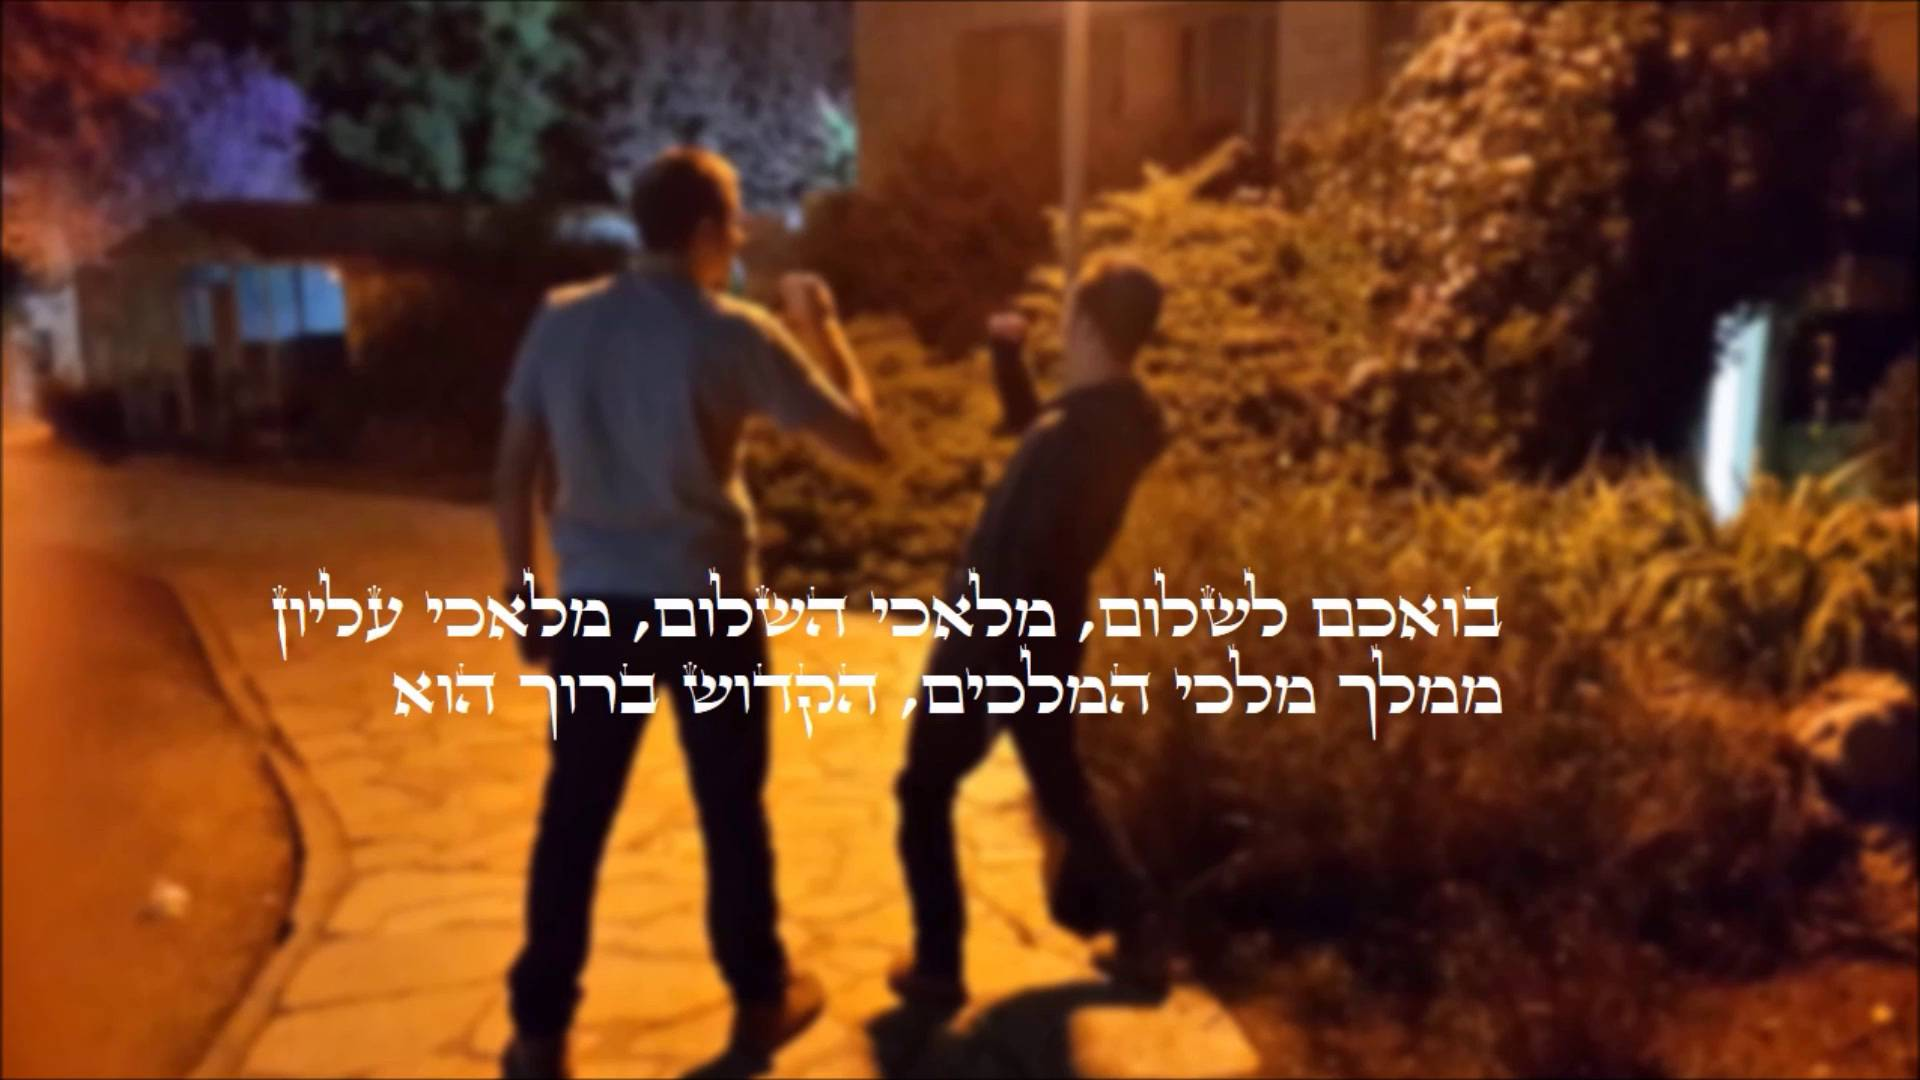 Shalom Aleichem to Avishai Eshel's Popular Dance Song